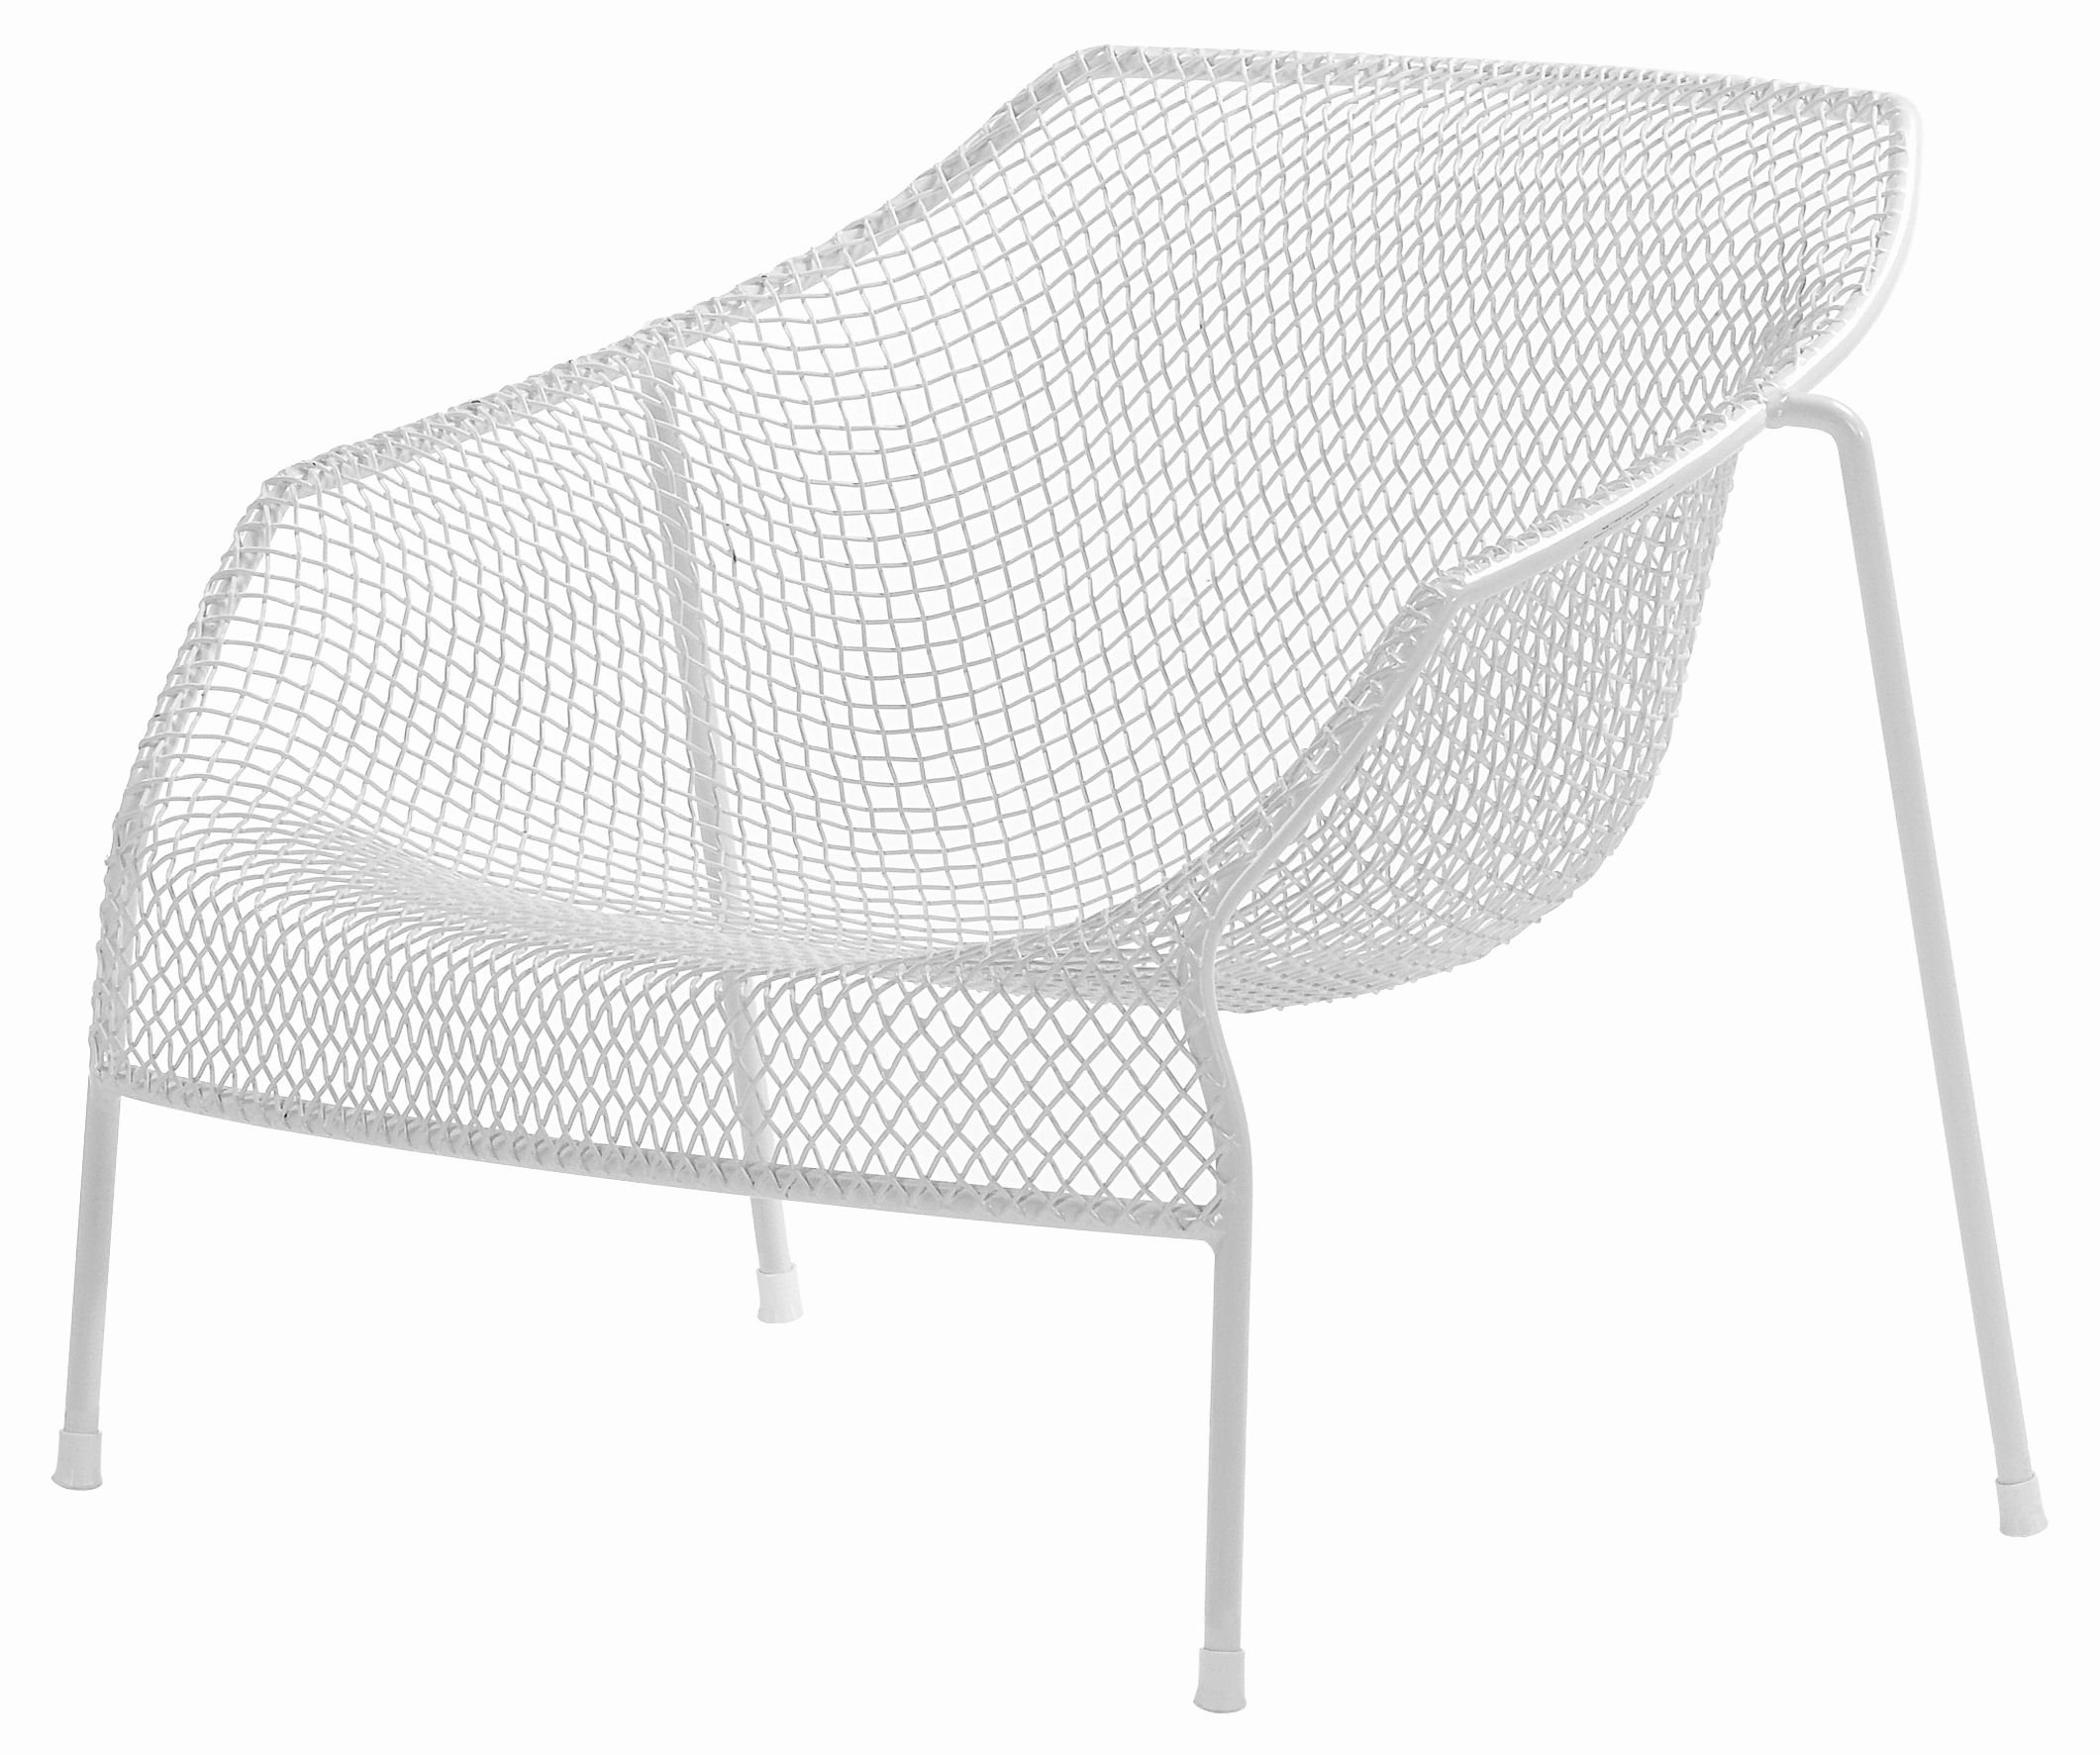 Furniture - Armchairs - Heaven Low armchair by Emu - Matt white - Steel